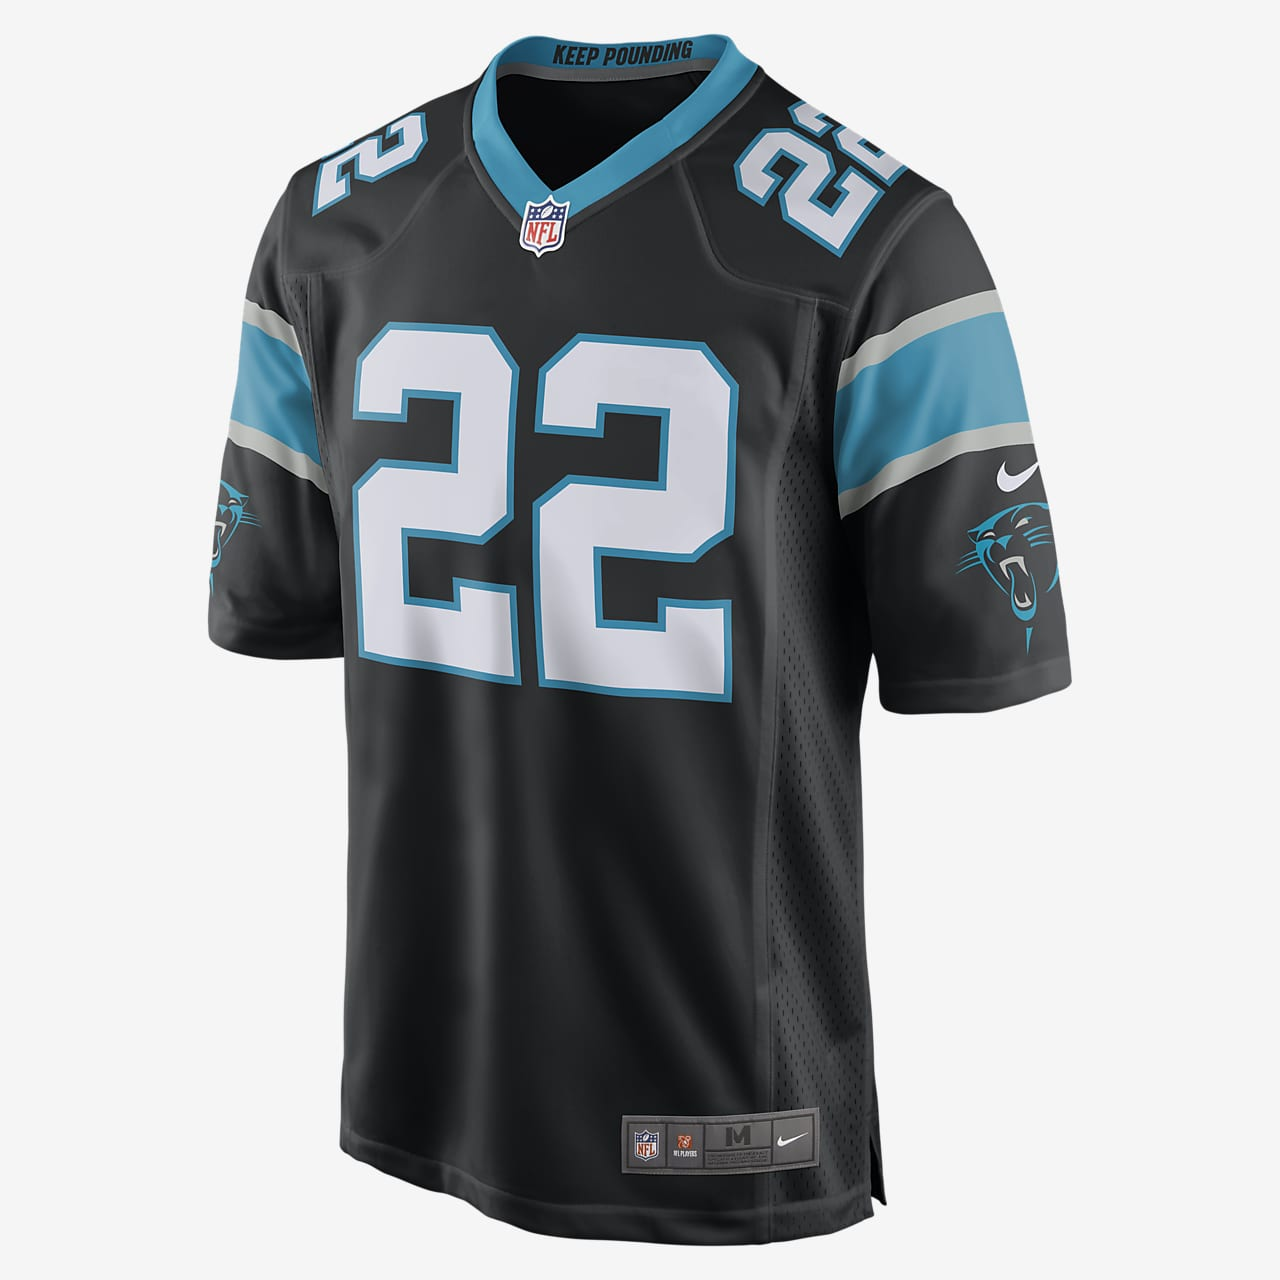 NFL Carolina Panthers (McCaffrey) American football-wedstrijdjersey voor heren